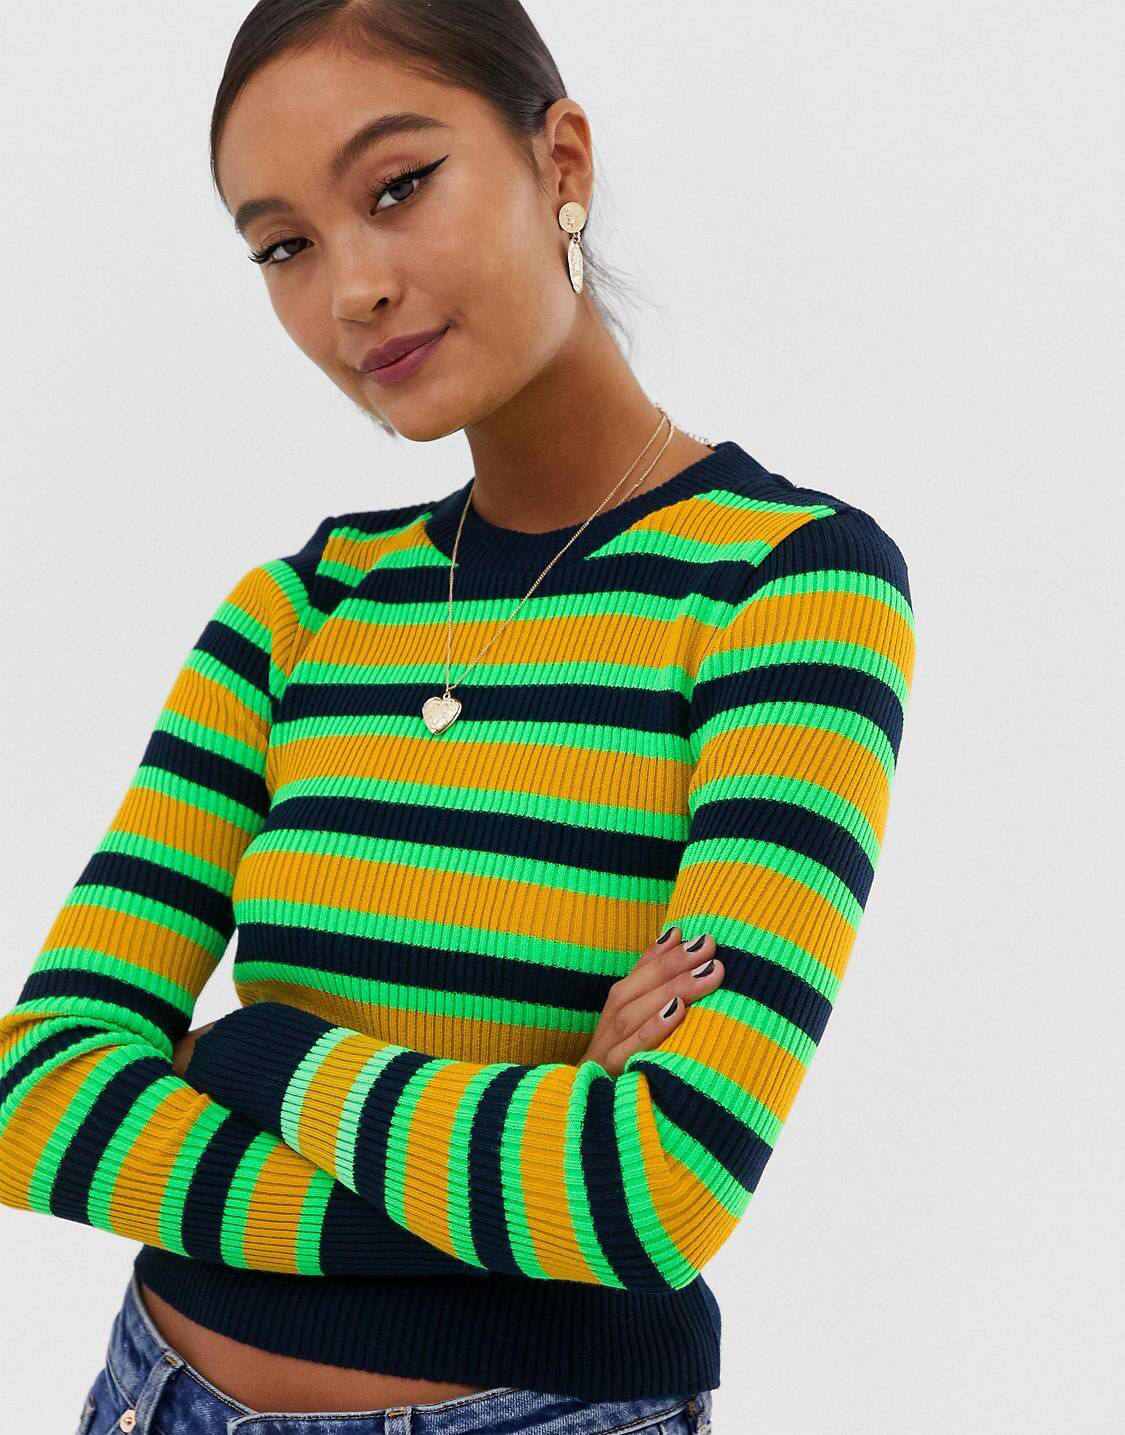 Just when I thought I didn't need something new from ASOS